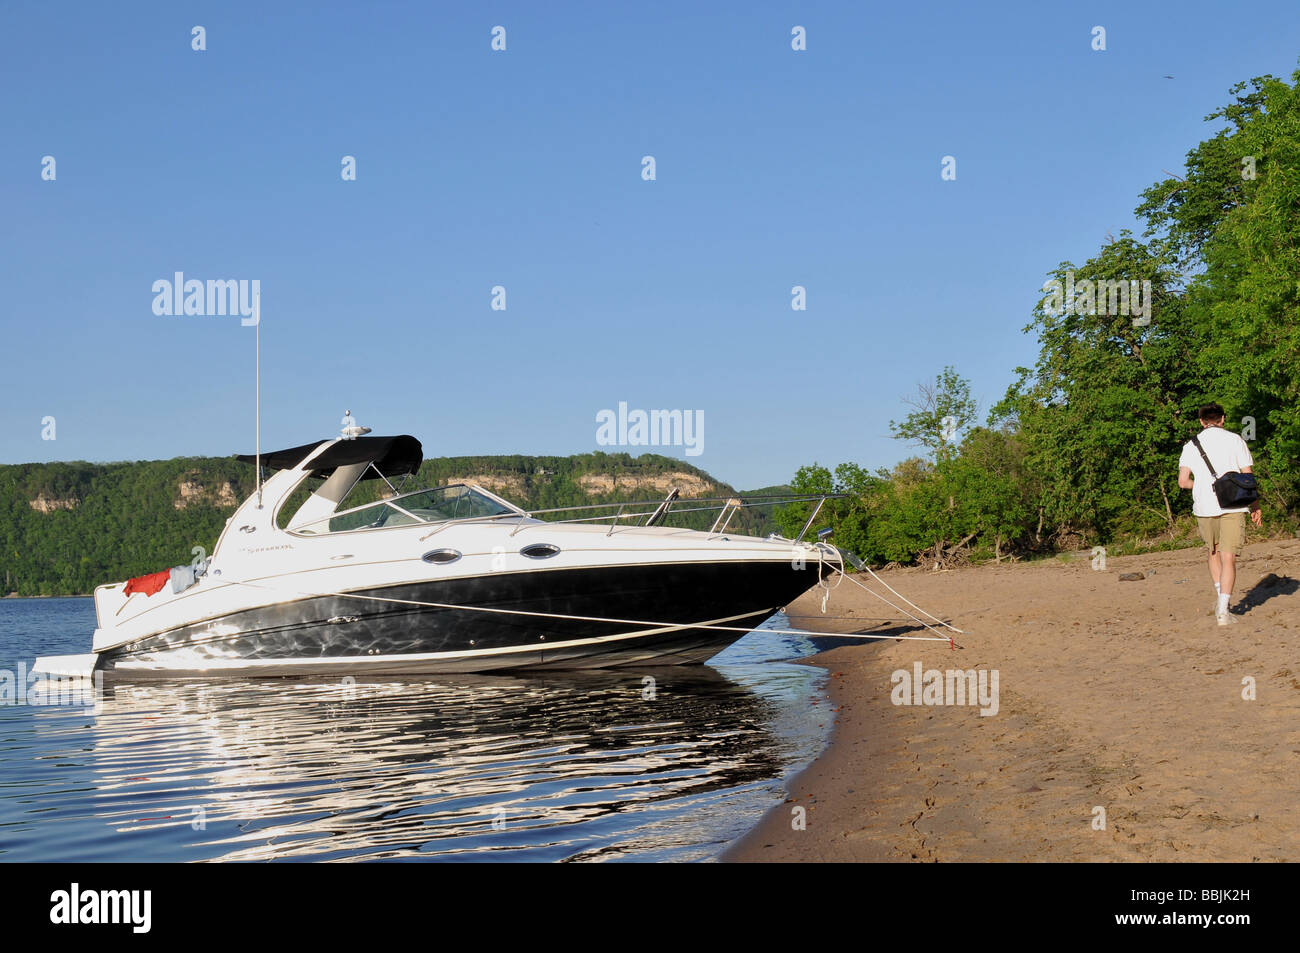 Anchored boat on sandy beach. - Stock Image